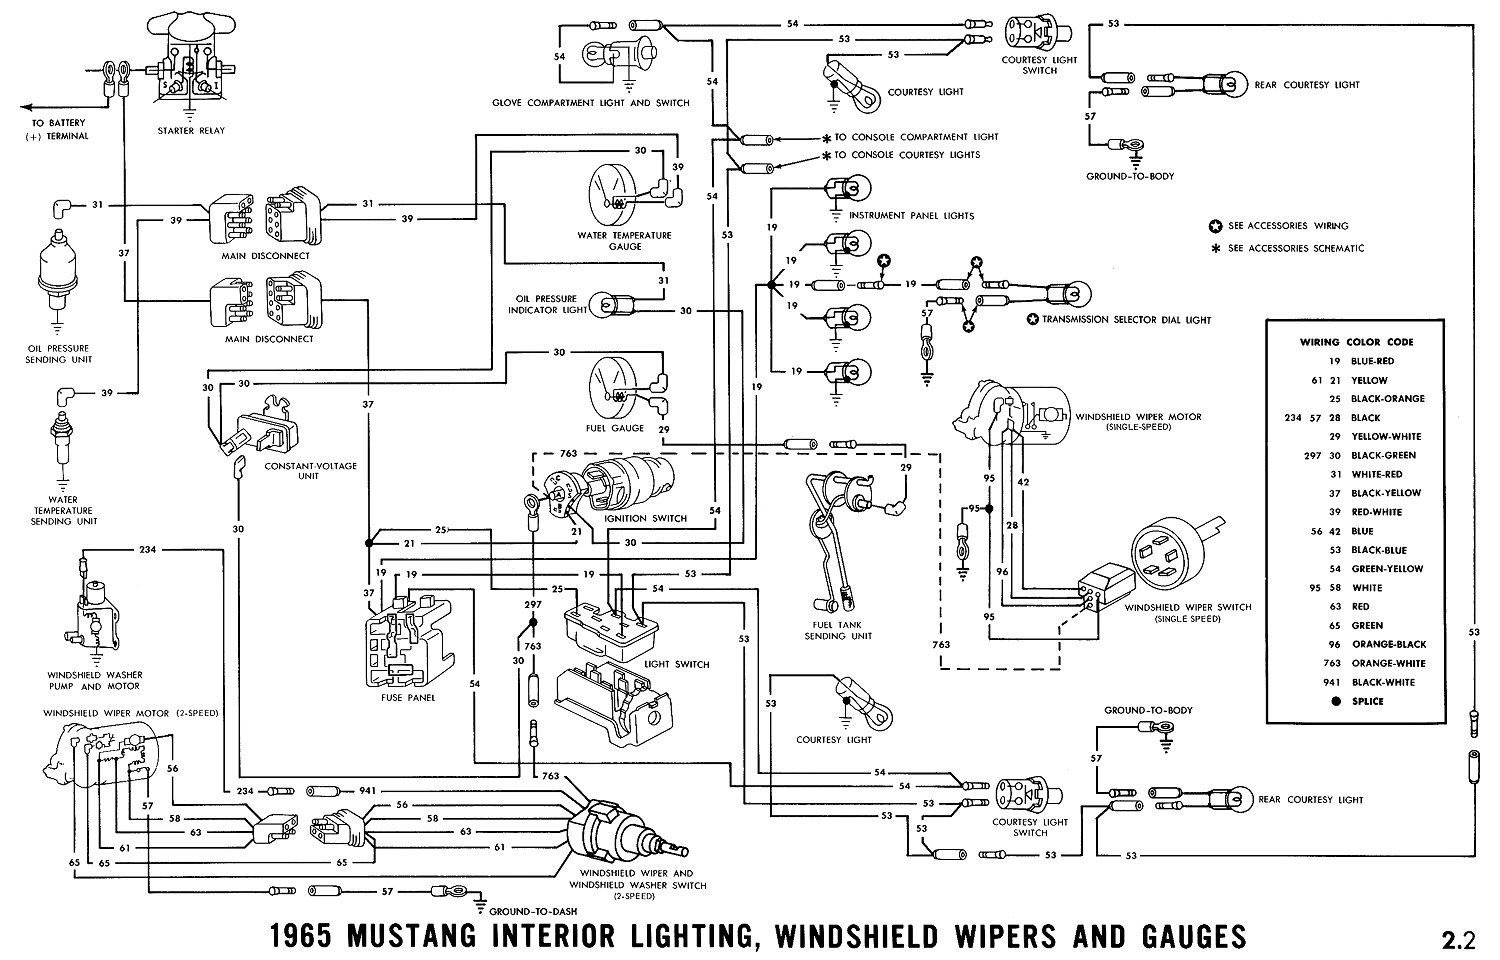 1965g 1965 mustang wiring diagrams average joe restoration 1965 mustang ignition switch wiring diagram at gsmx.co